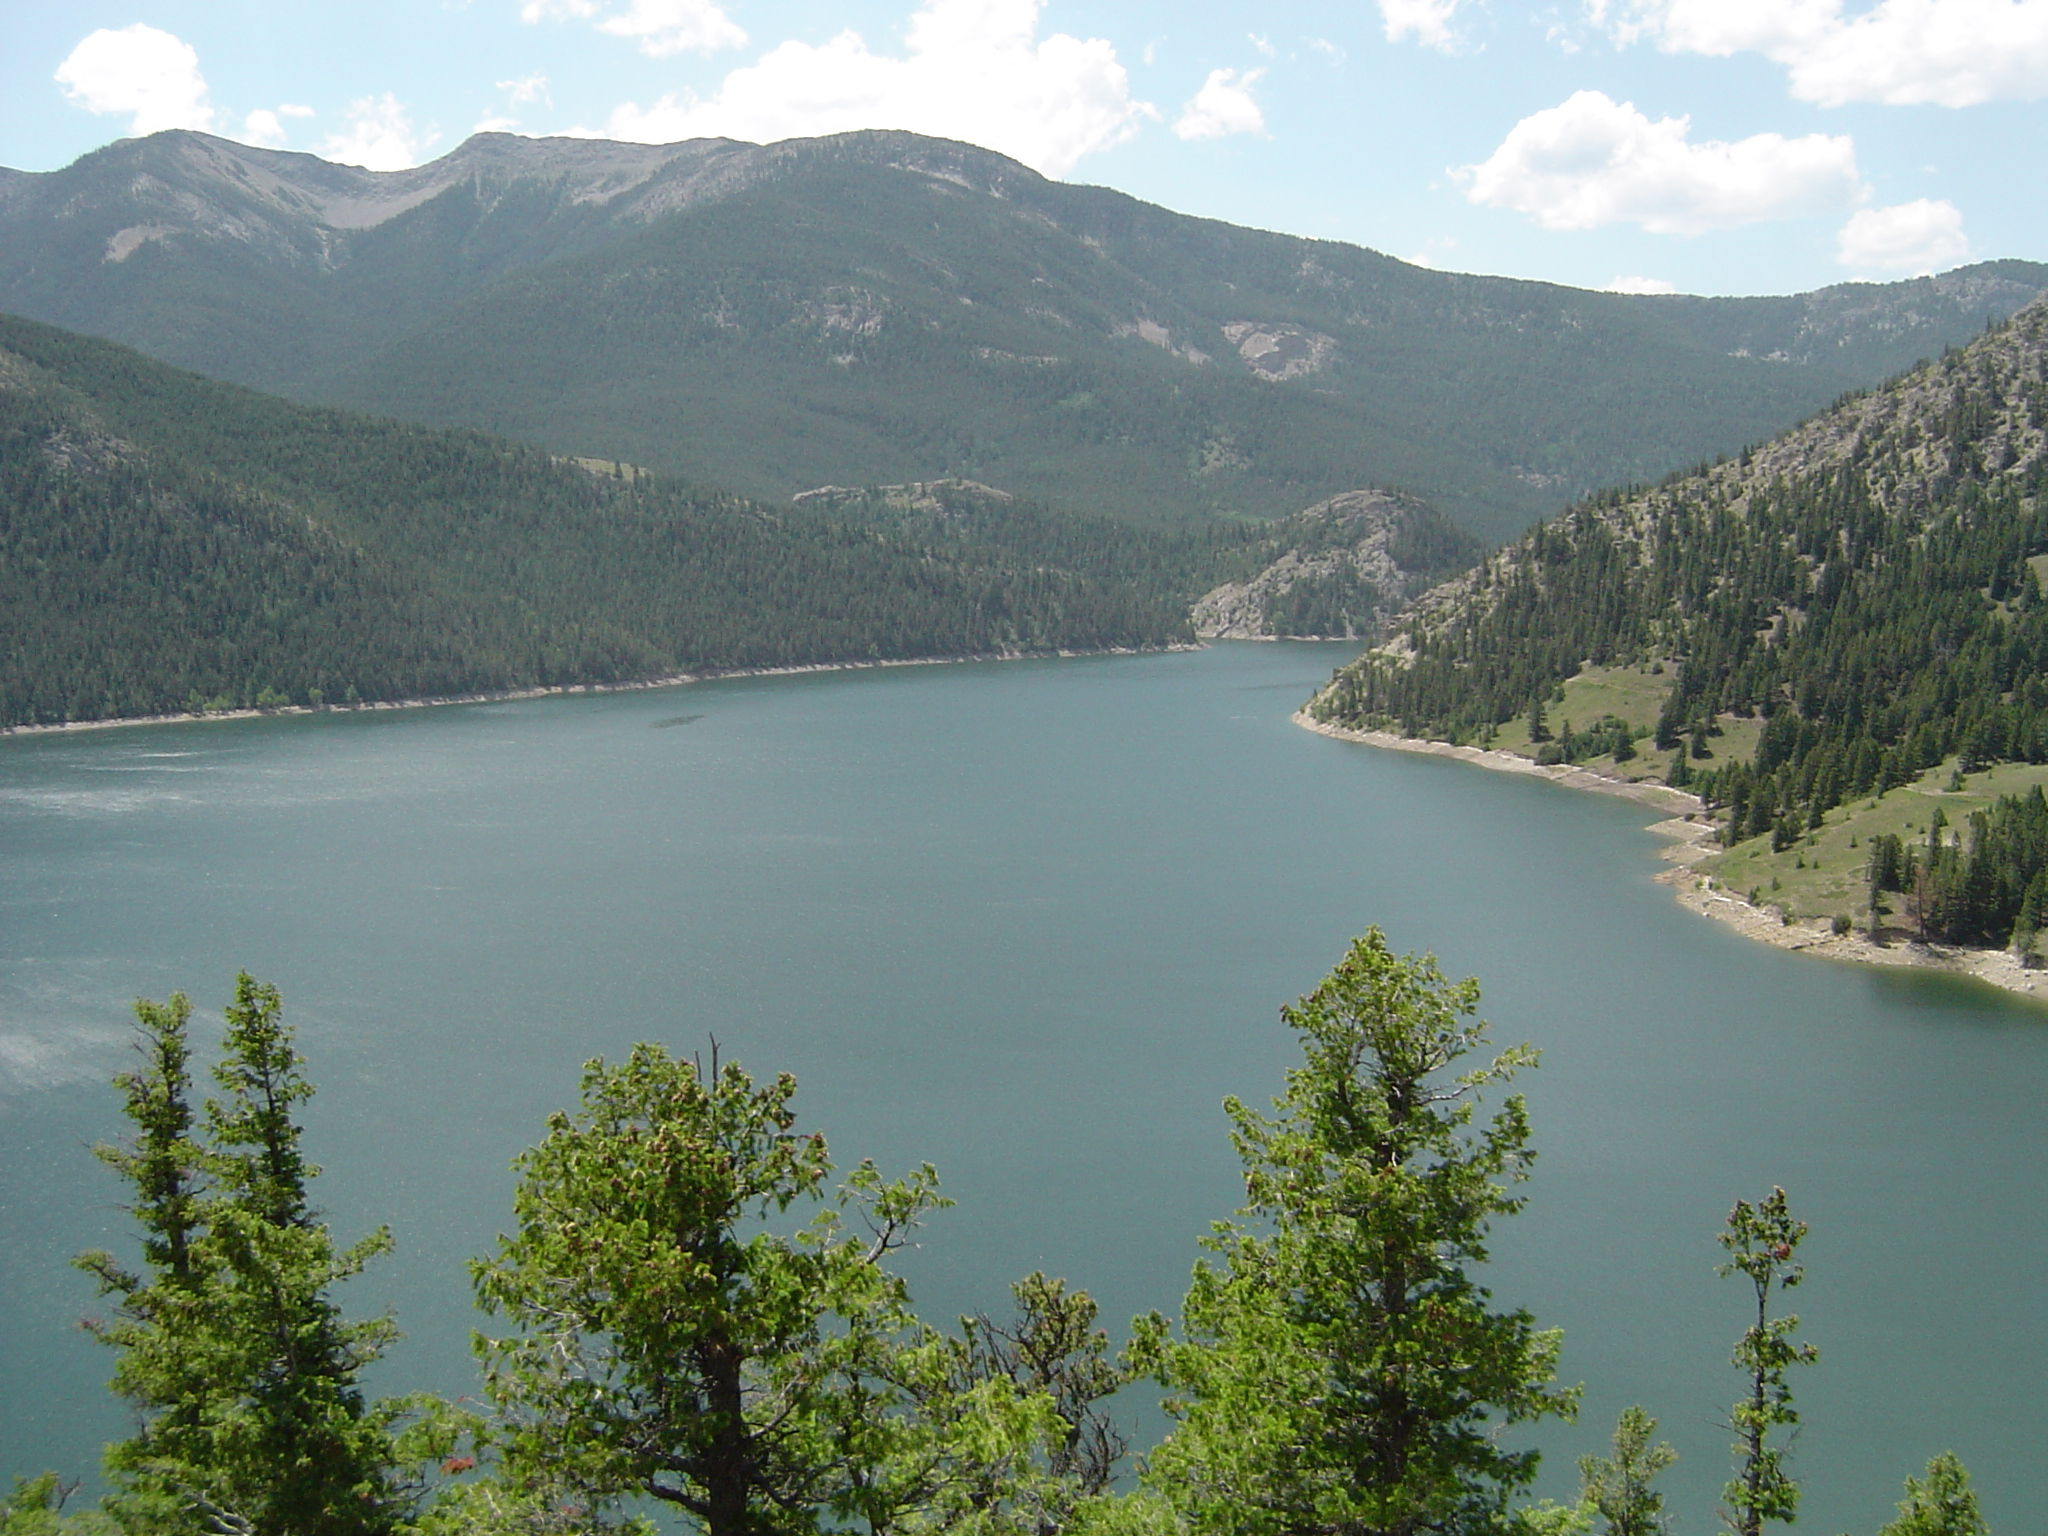 Dams & Reservoirs - How reservoirs contribute to water supply